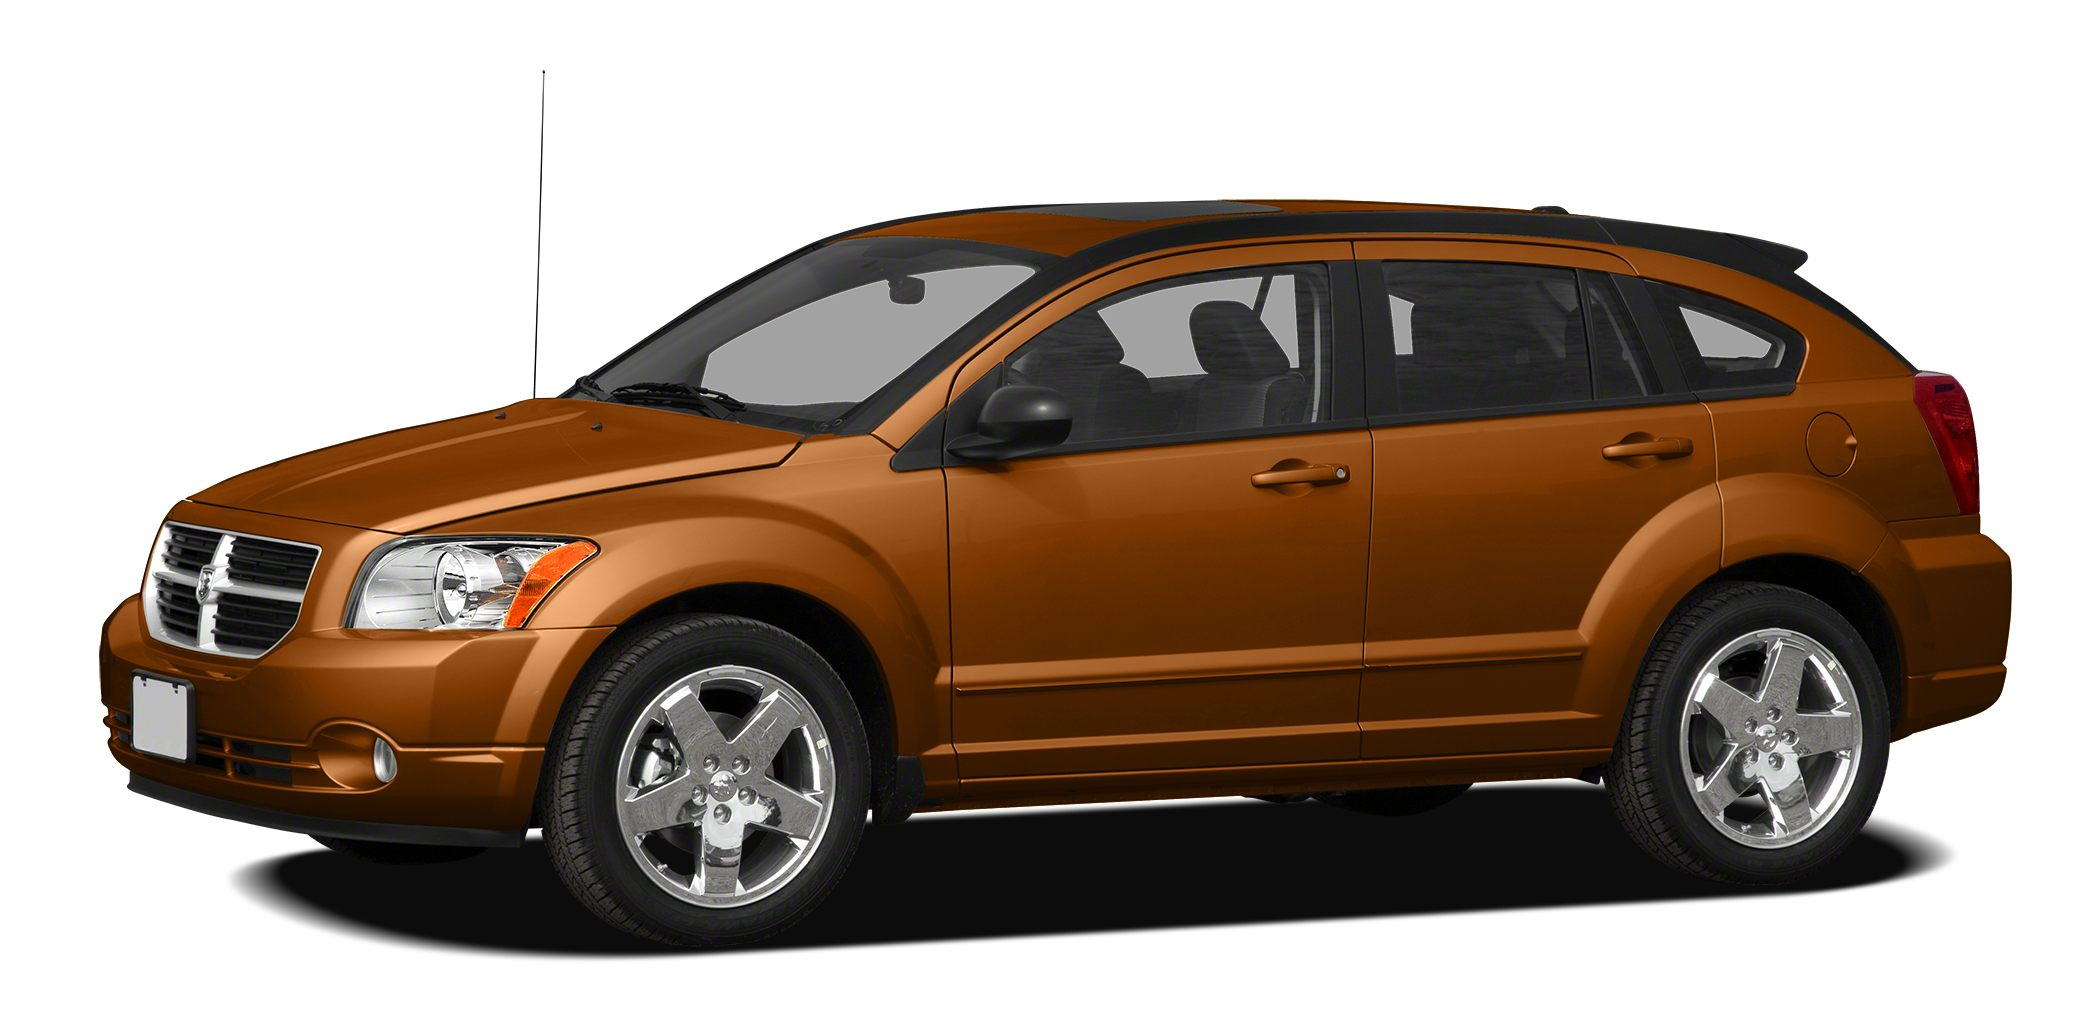 2011 Dodge Caliber Mainstreet ASE Certified Mechanic Inspected Buy with confidence Free Carfax